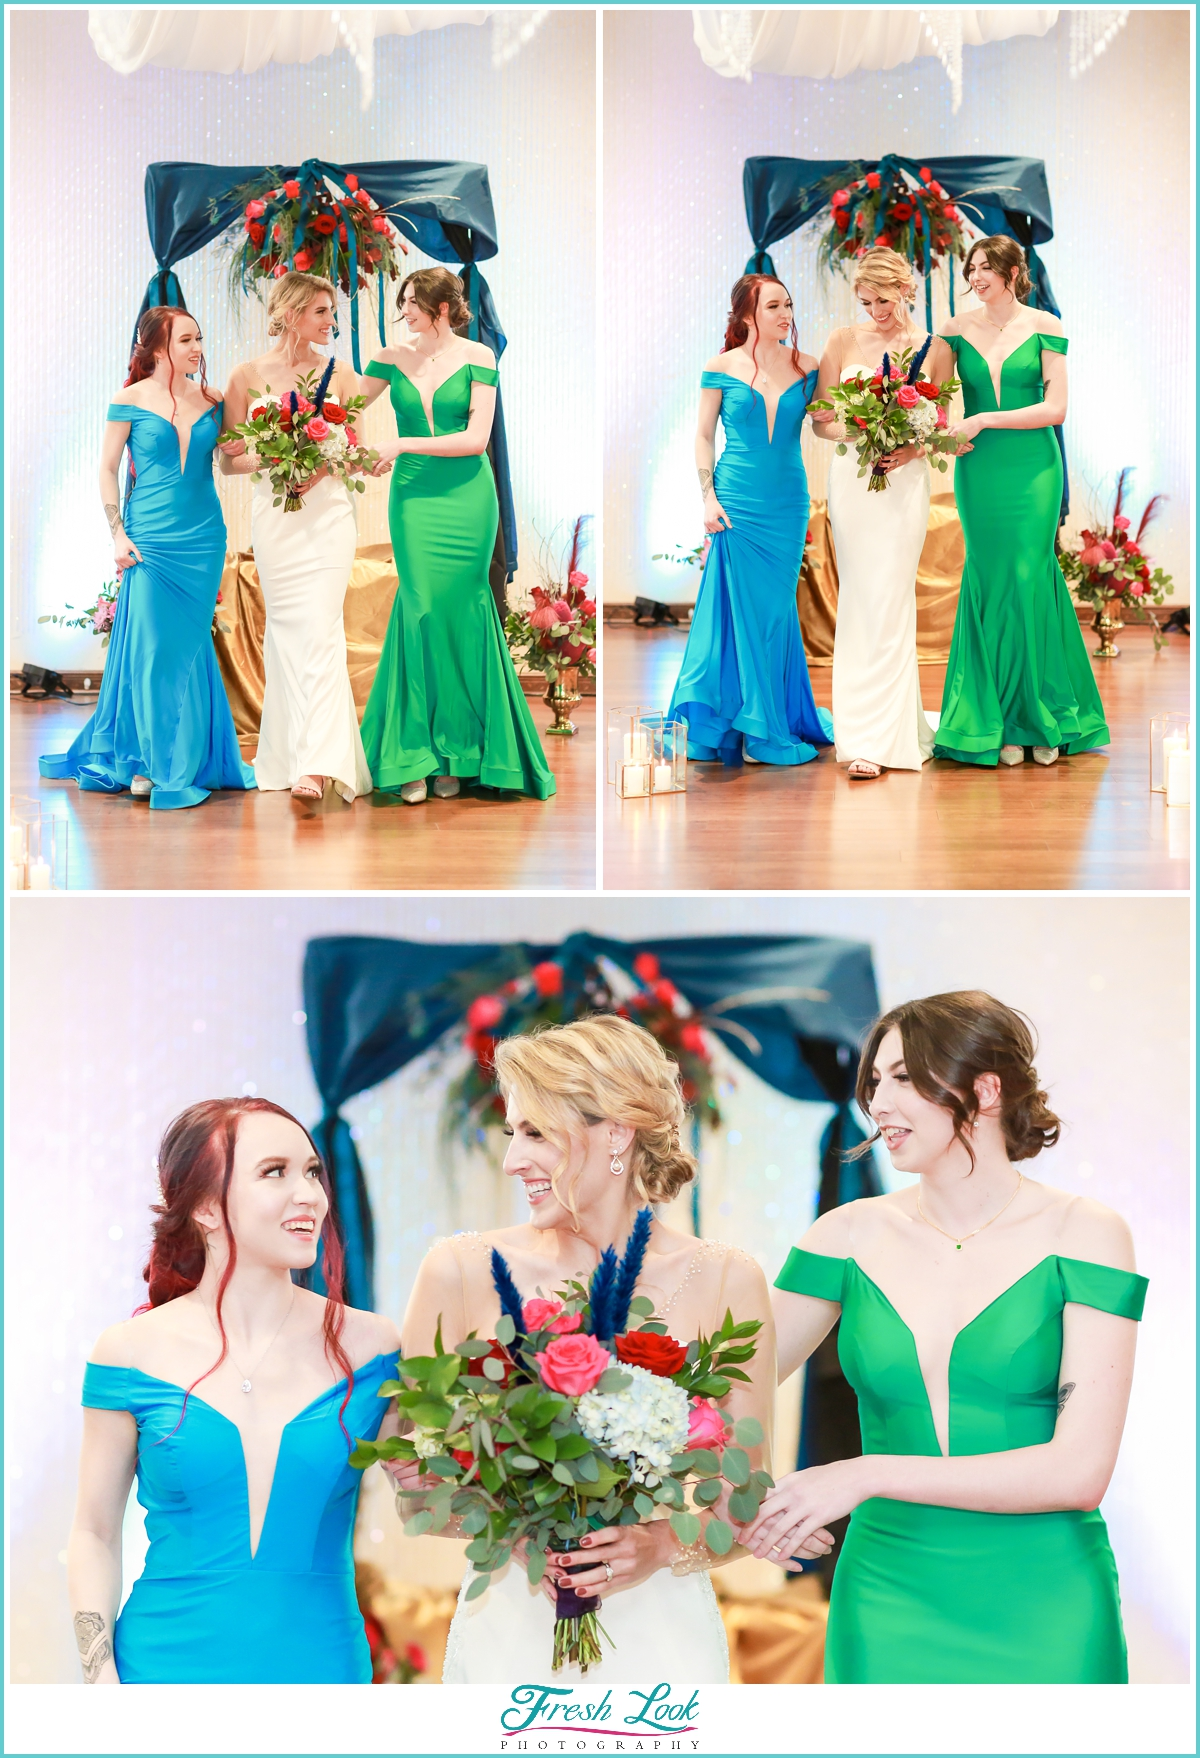 bride and bridesmaids wearing jewel toned gowns